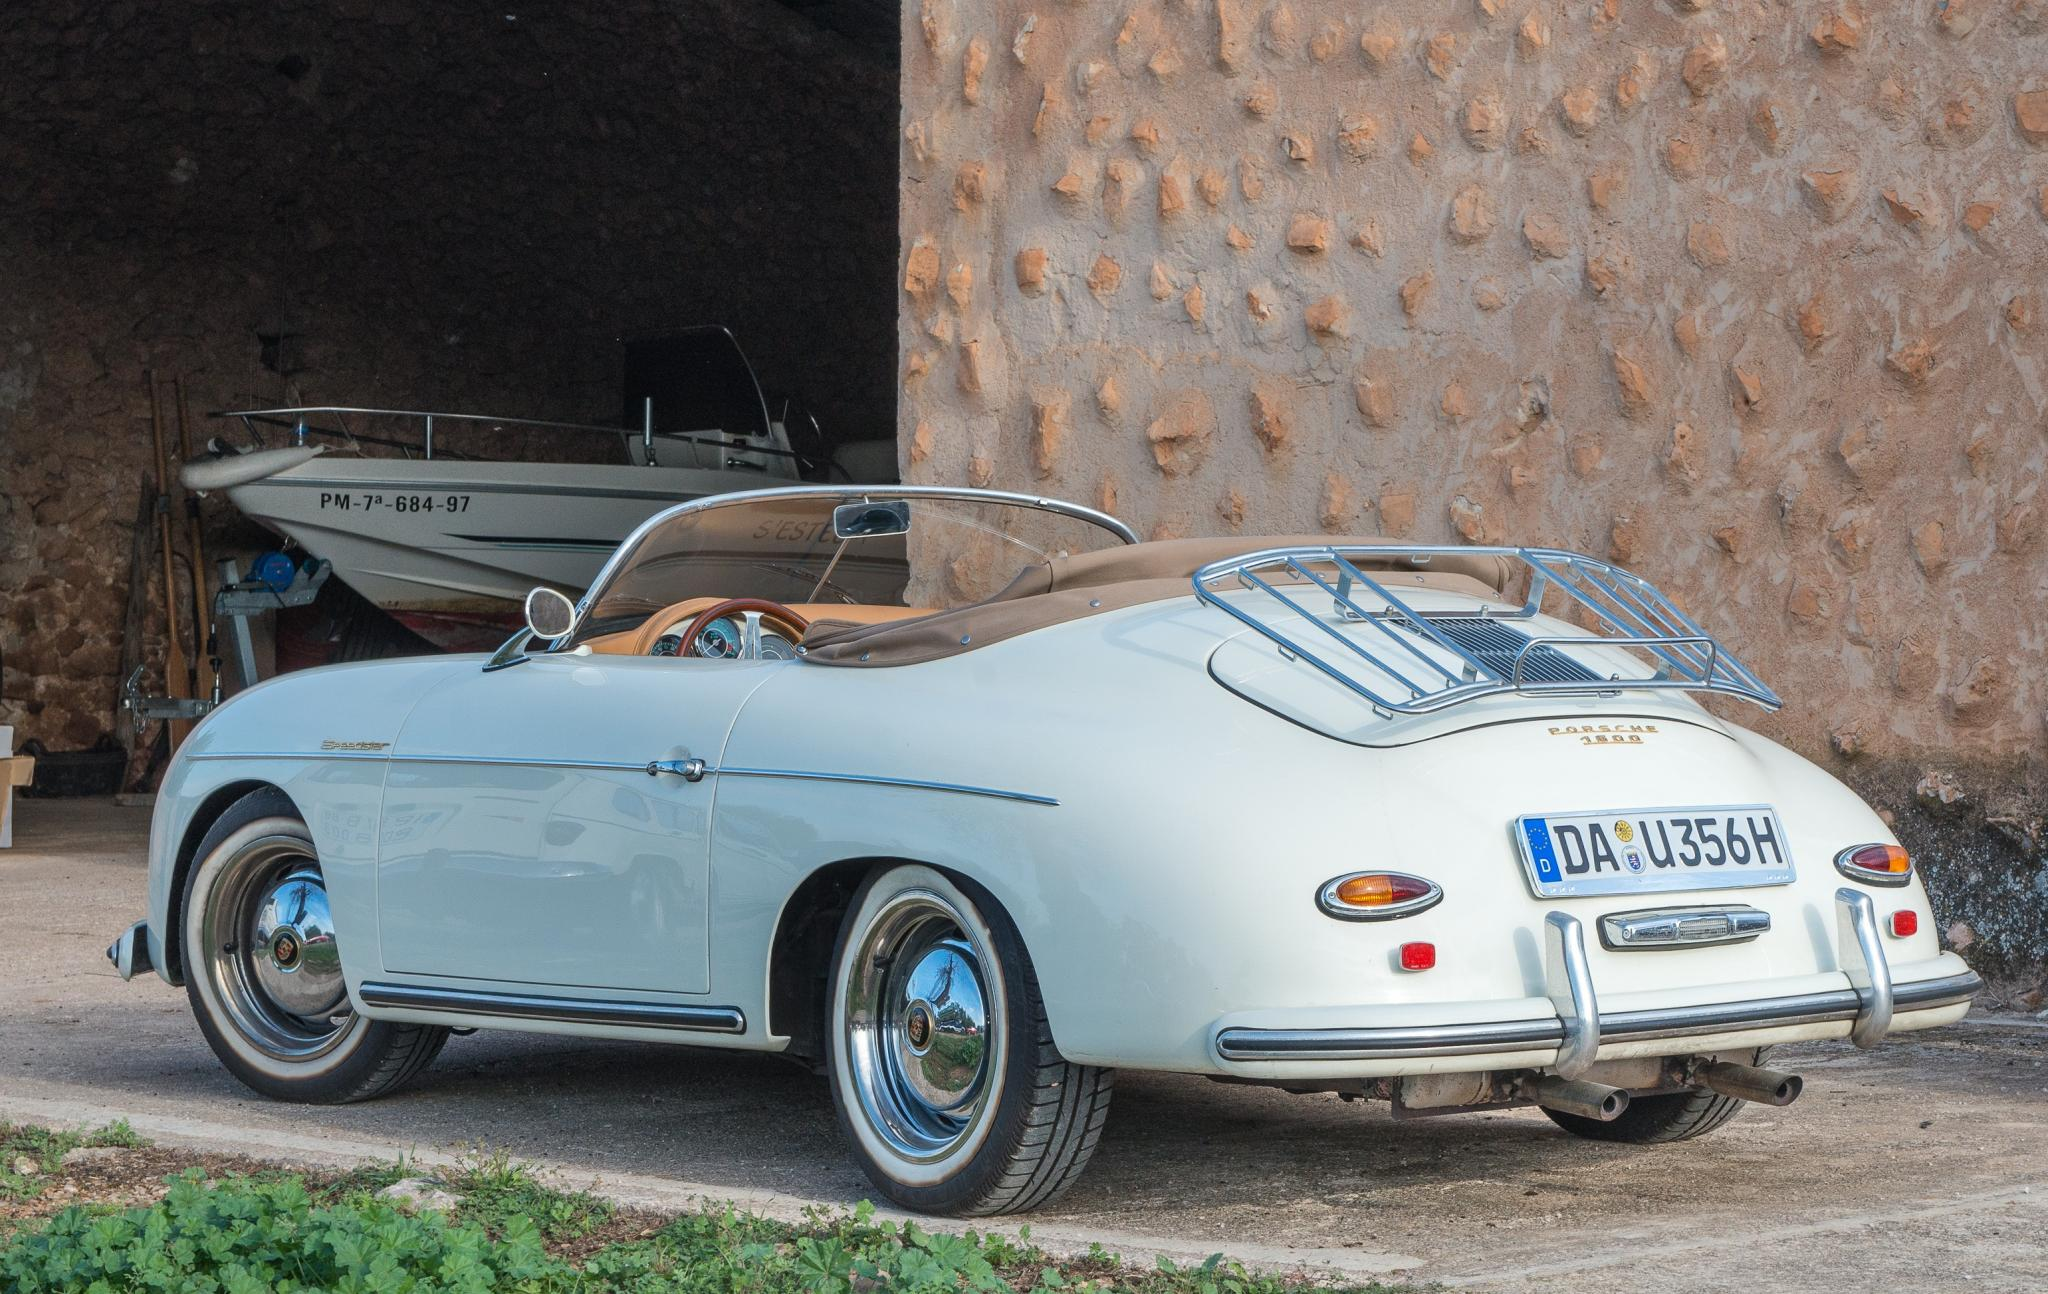 Porsche 365 looking very period, elegant and cute